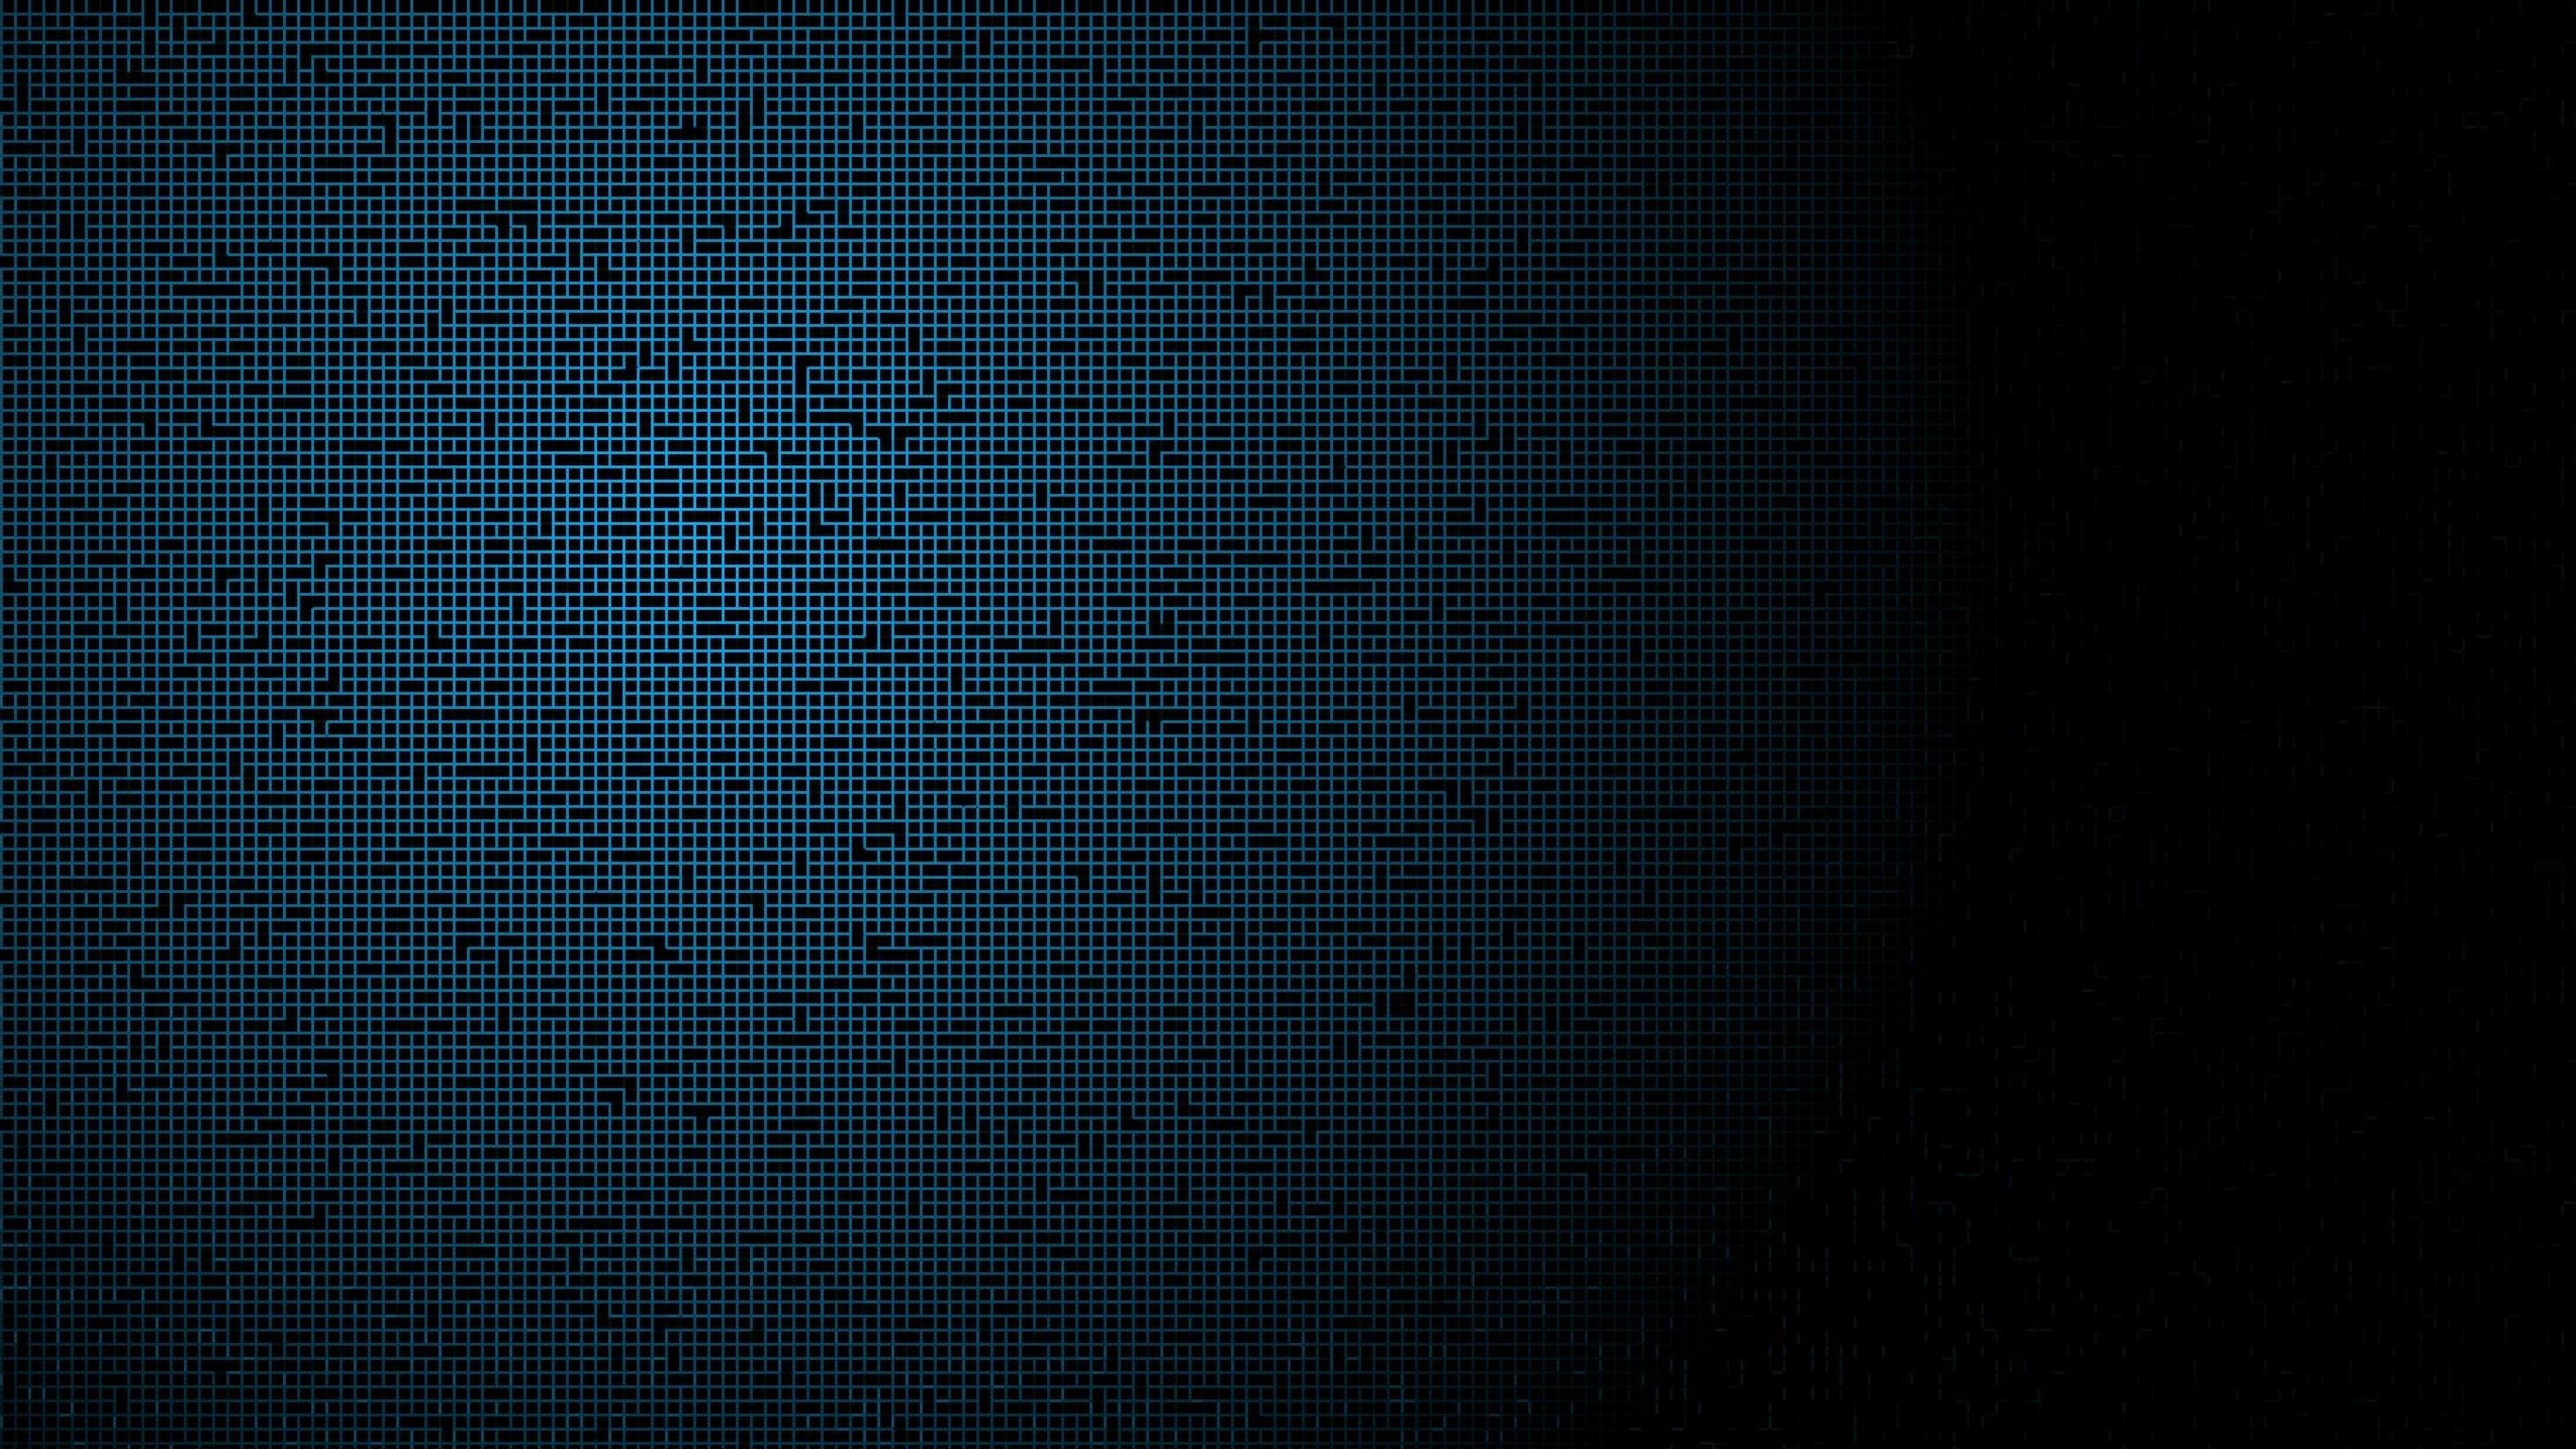 3840X2160 Grid Texture Widescreen Wallpaper 5803